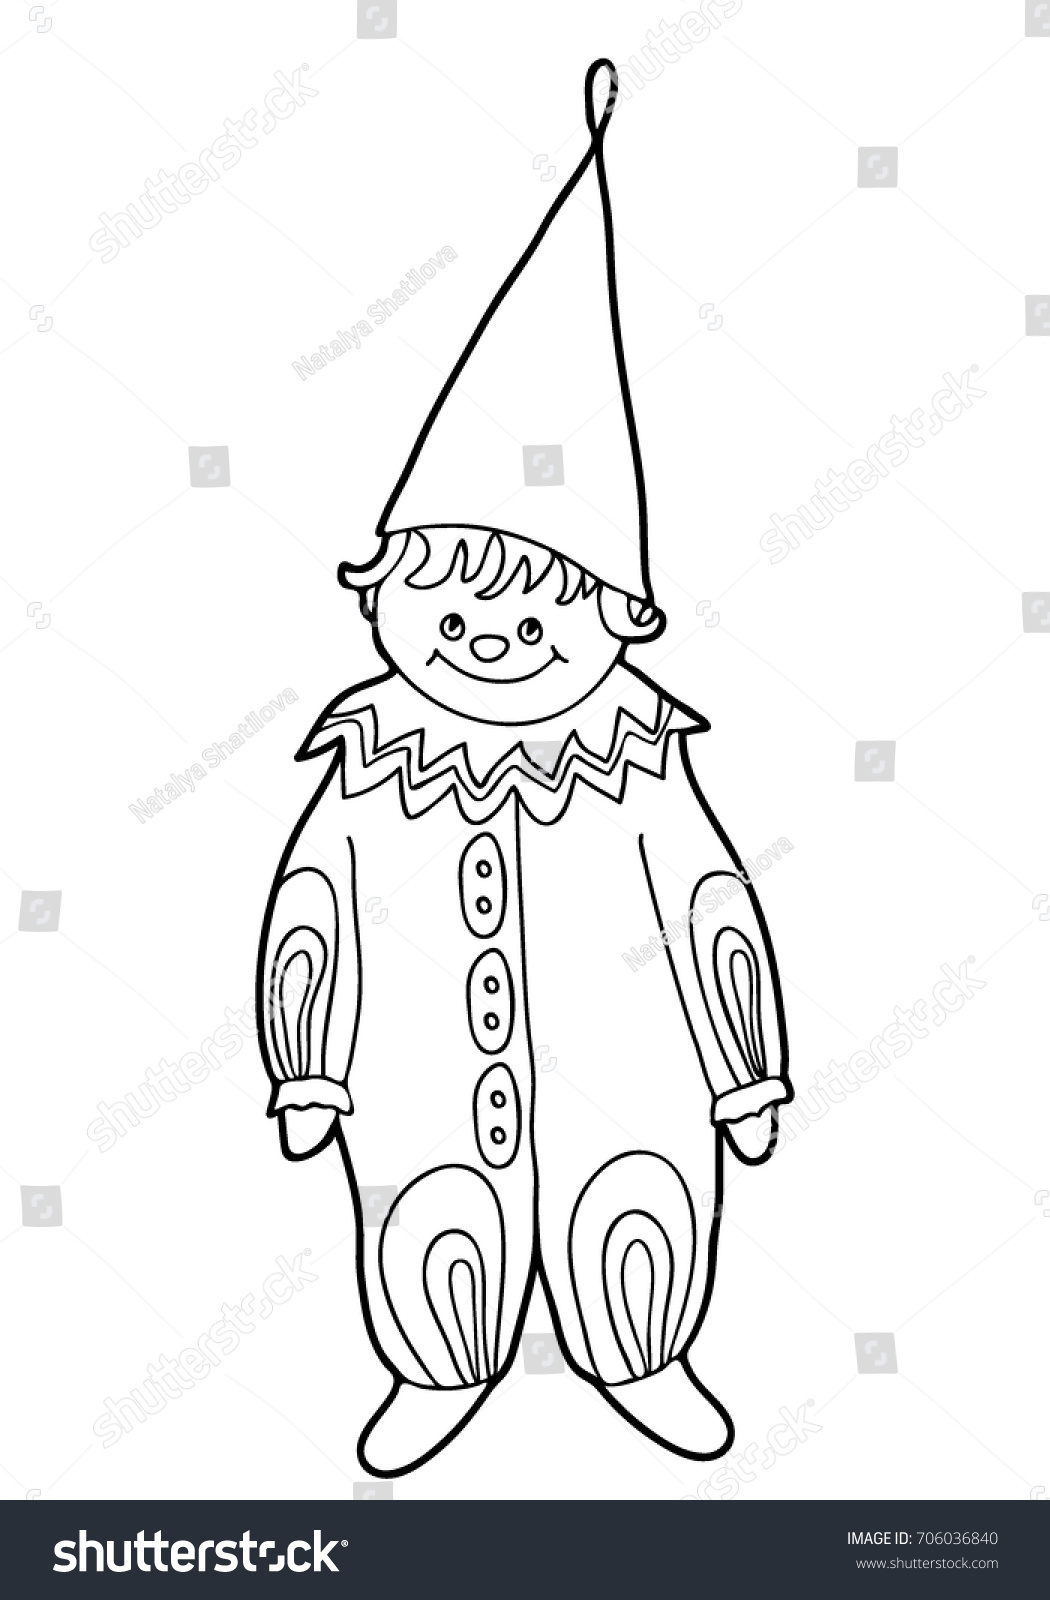 Coloring Children Cheerful Parsley Christmas Tree Stock Vector ...